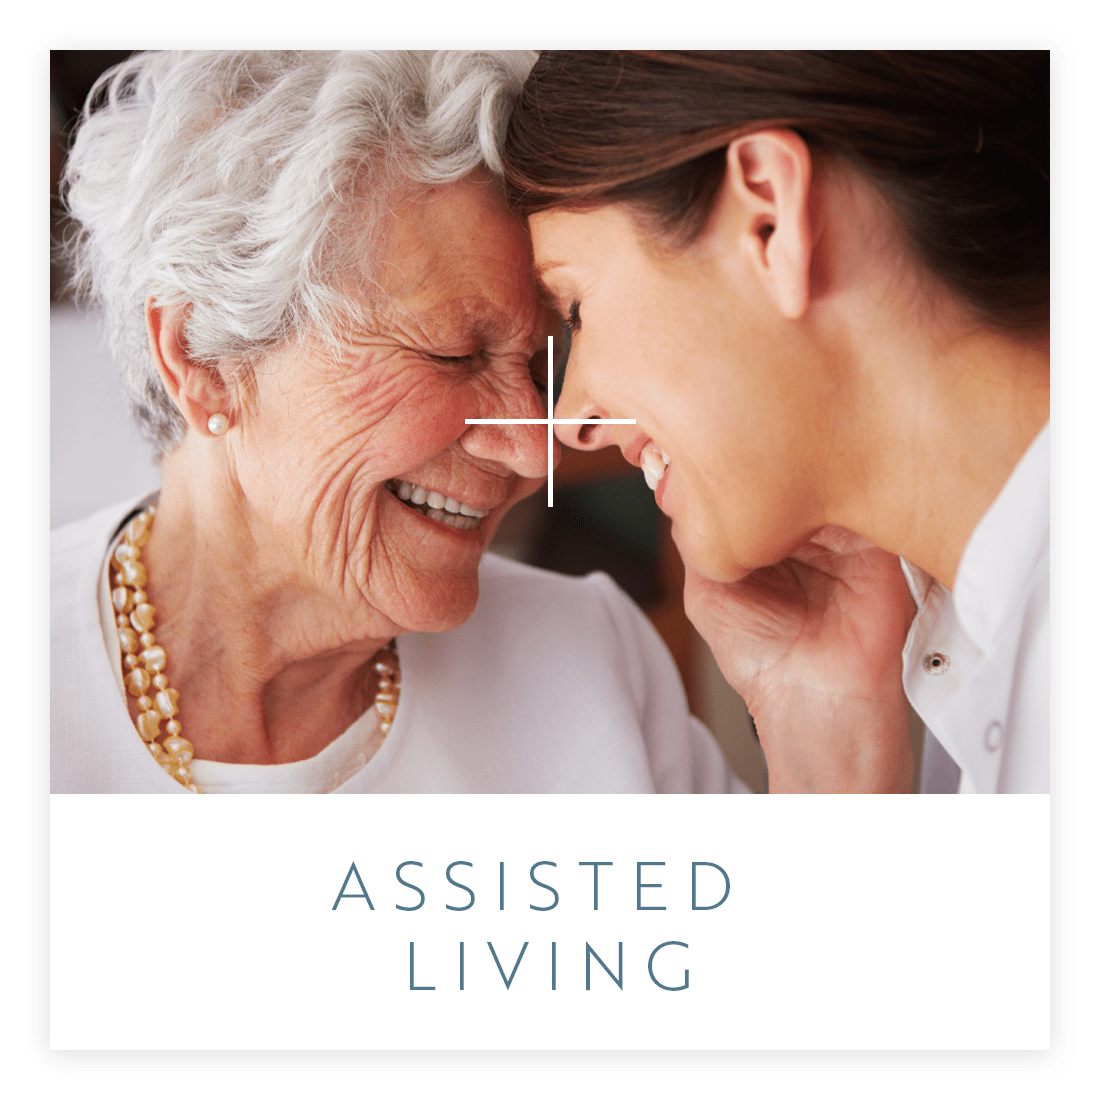 View our Assisted Living services at Regency Palms Long Beach in Long Beach, California